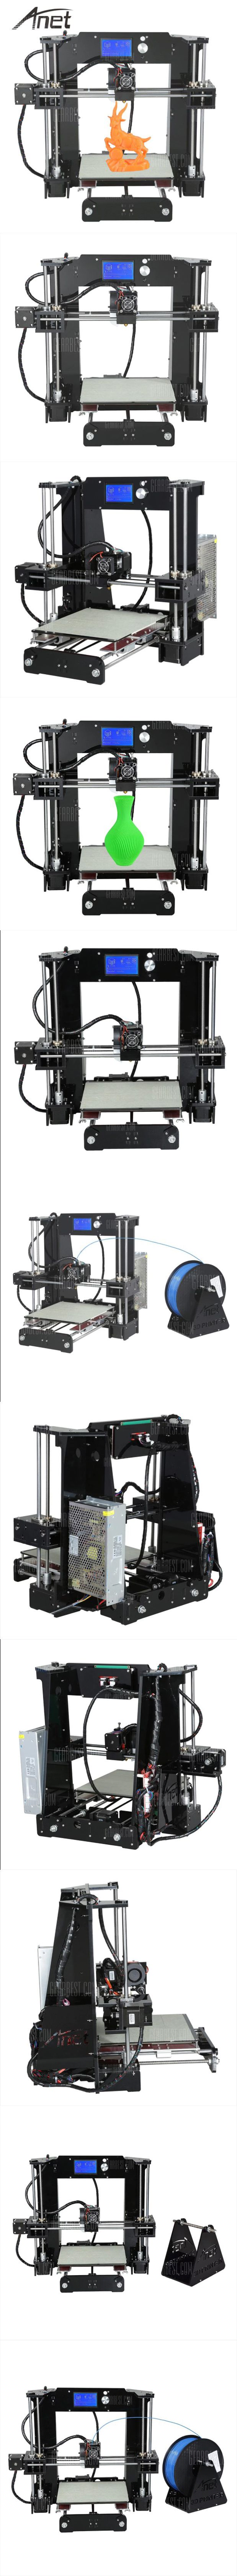 The Anet A6 3D desktop printer is a 3D printer with acrylic frame and single extruder. It features with 220 x 220 x 250mm build volume, 0.4mm nozzle diameter. To maintain the garage-built feel and the handmade charms, Anet A6 3D desktop printer is also a build-it-yourself kit, which provides you an unforgettable step-by-step learning experience of 3D printer!  #3Dprinter